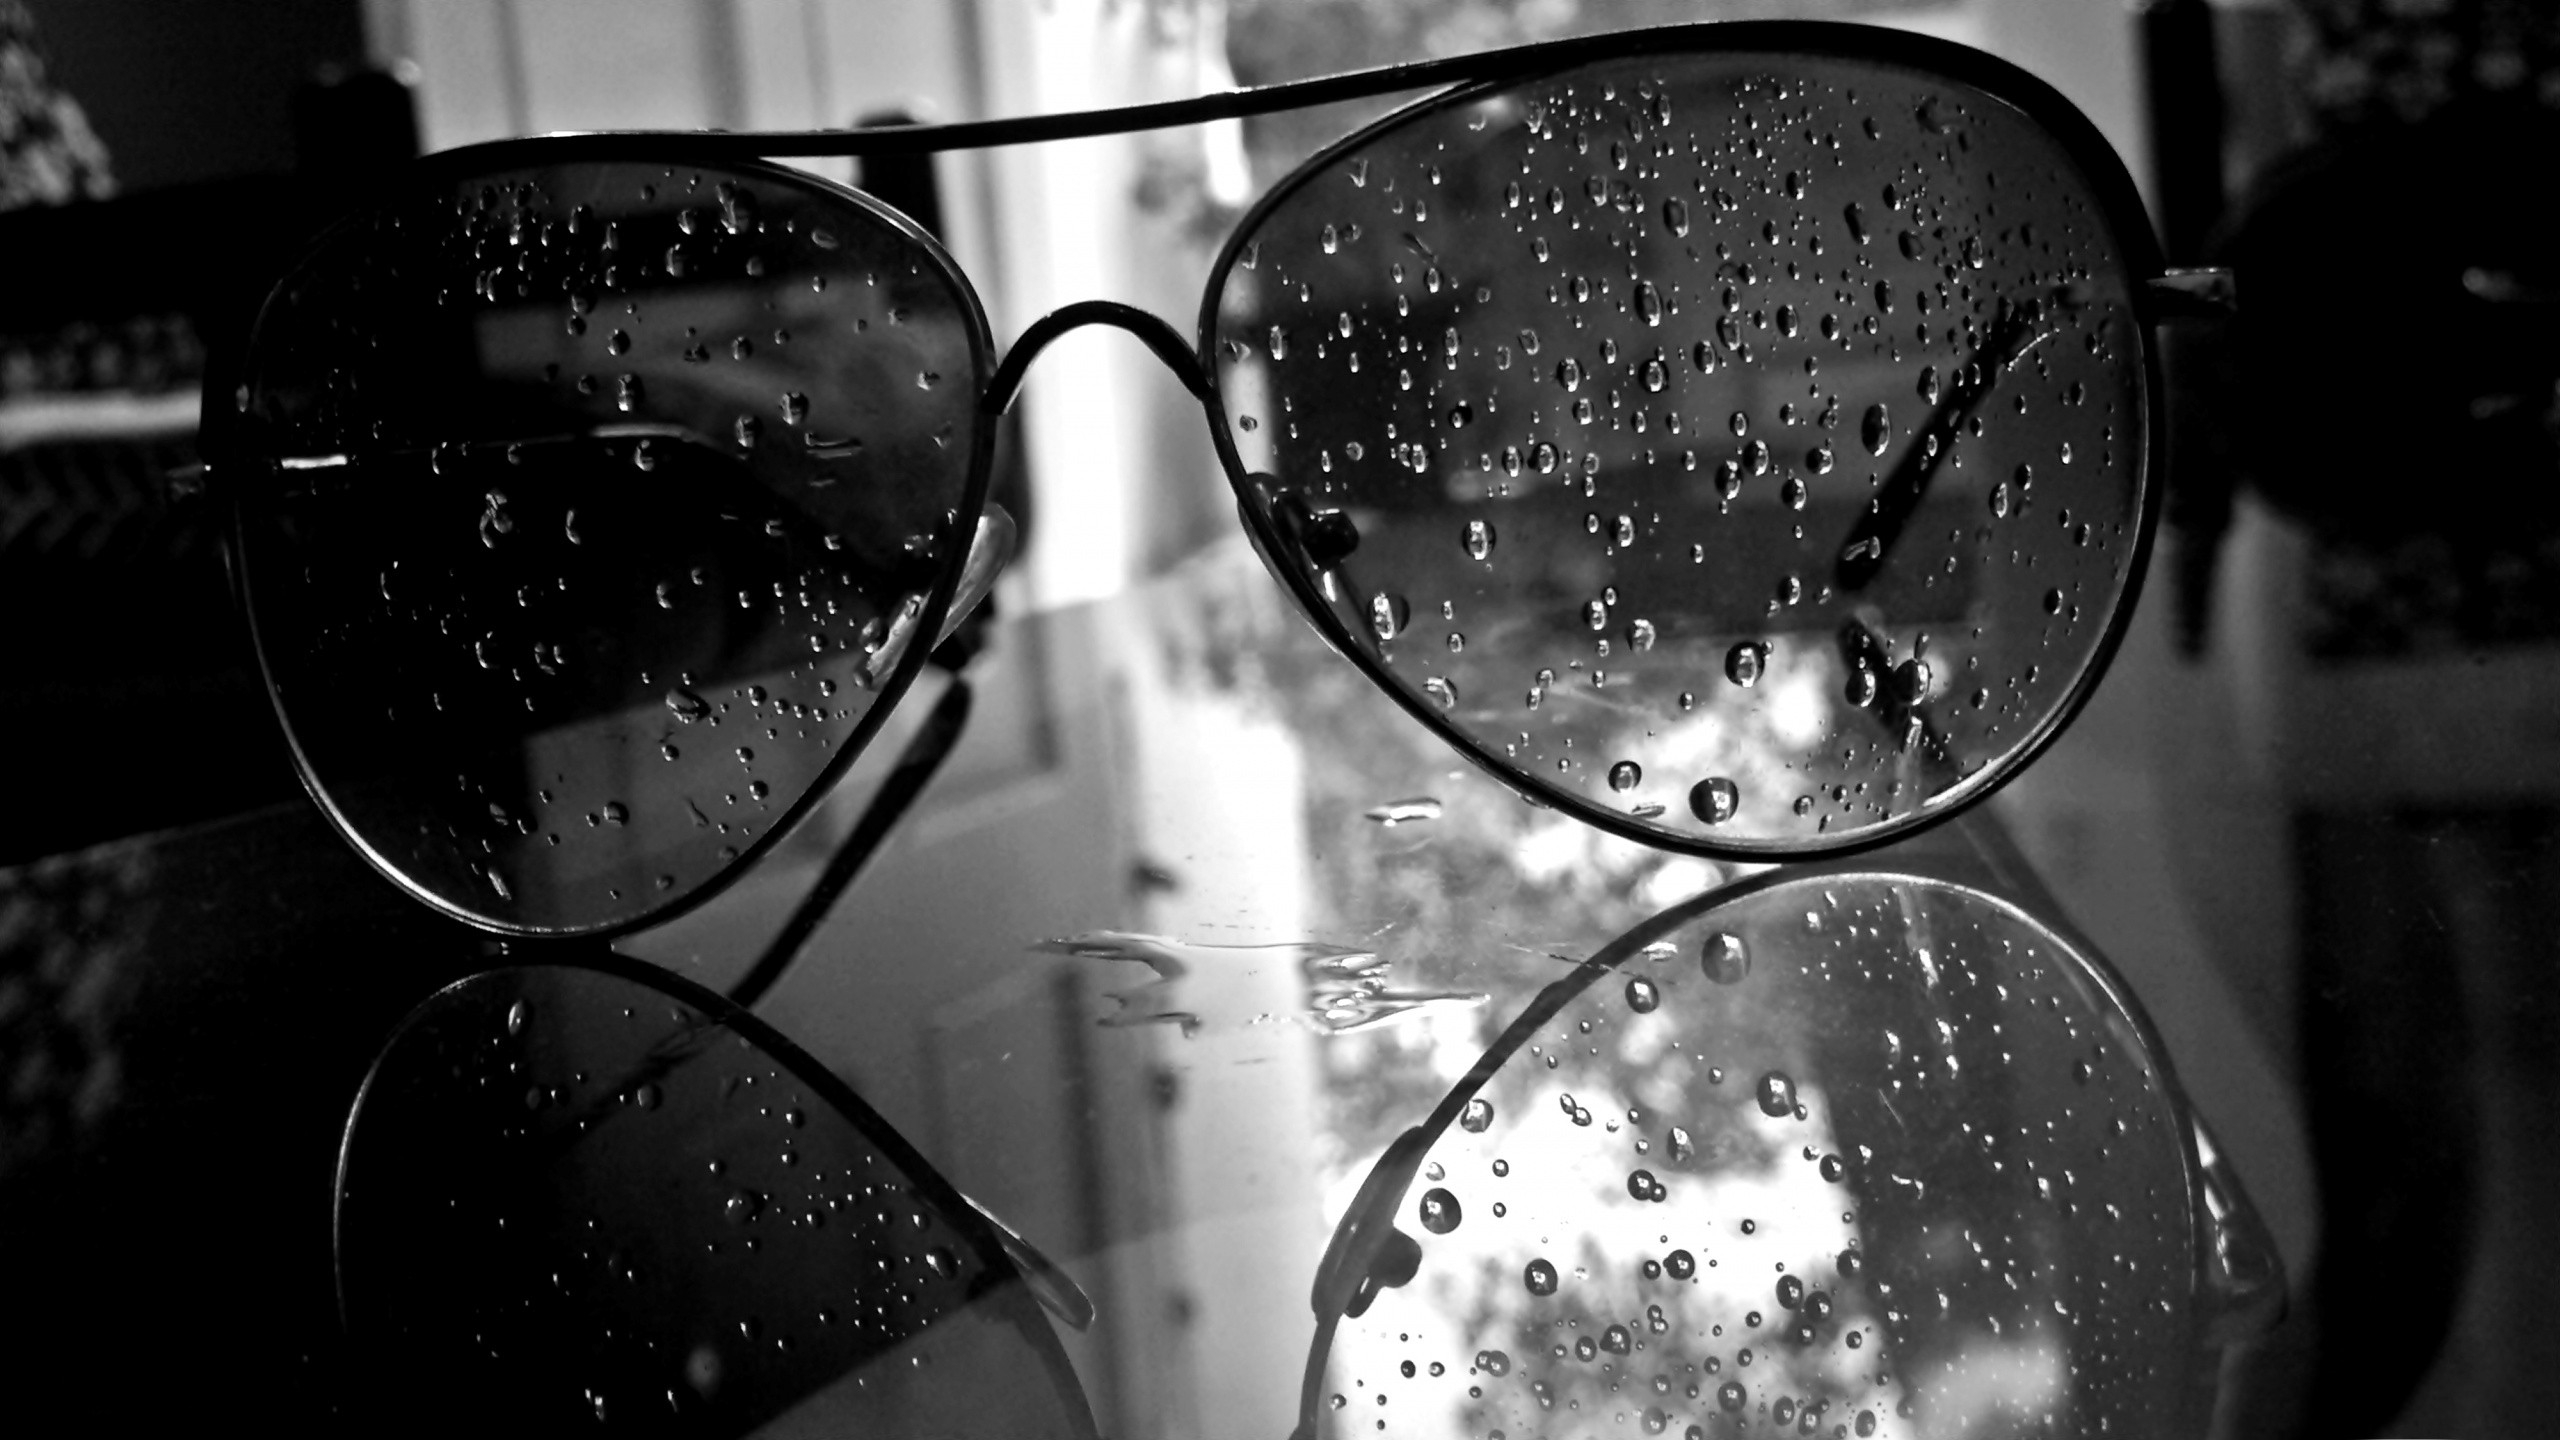 Water Drops On Glasses Hd Wallpaper Background Image 2560x1440